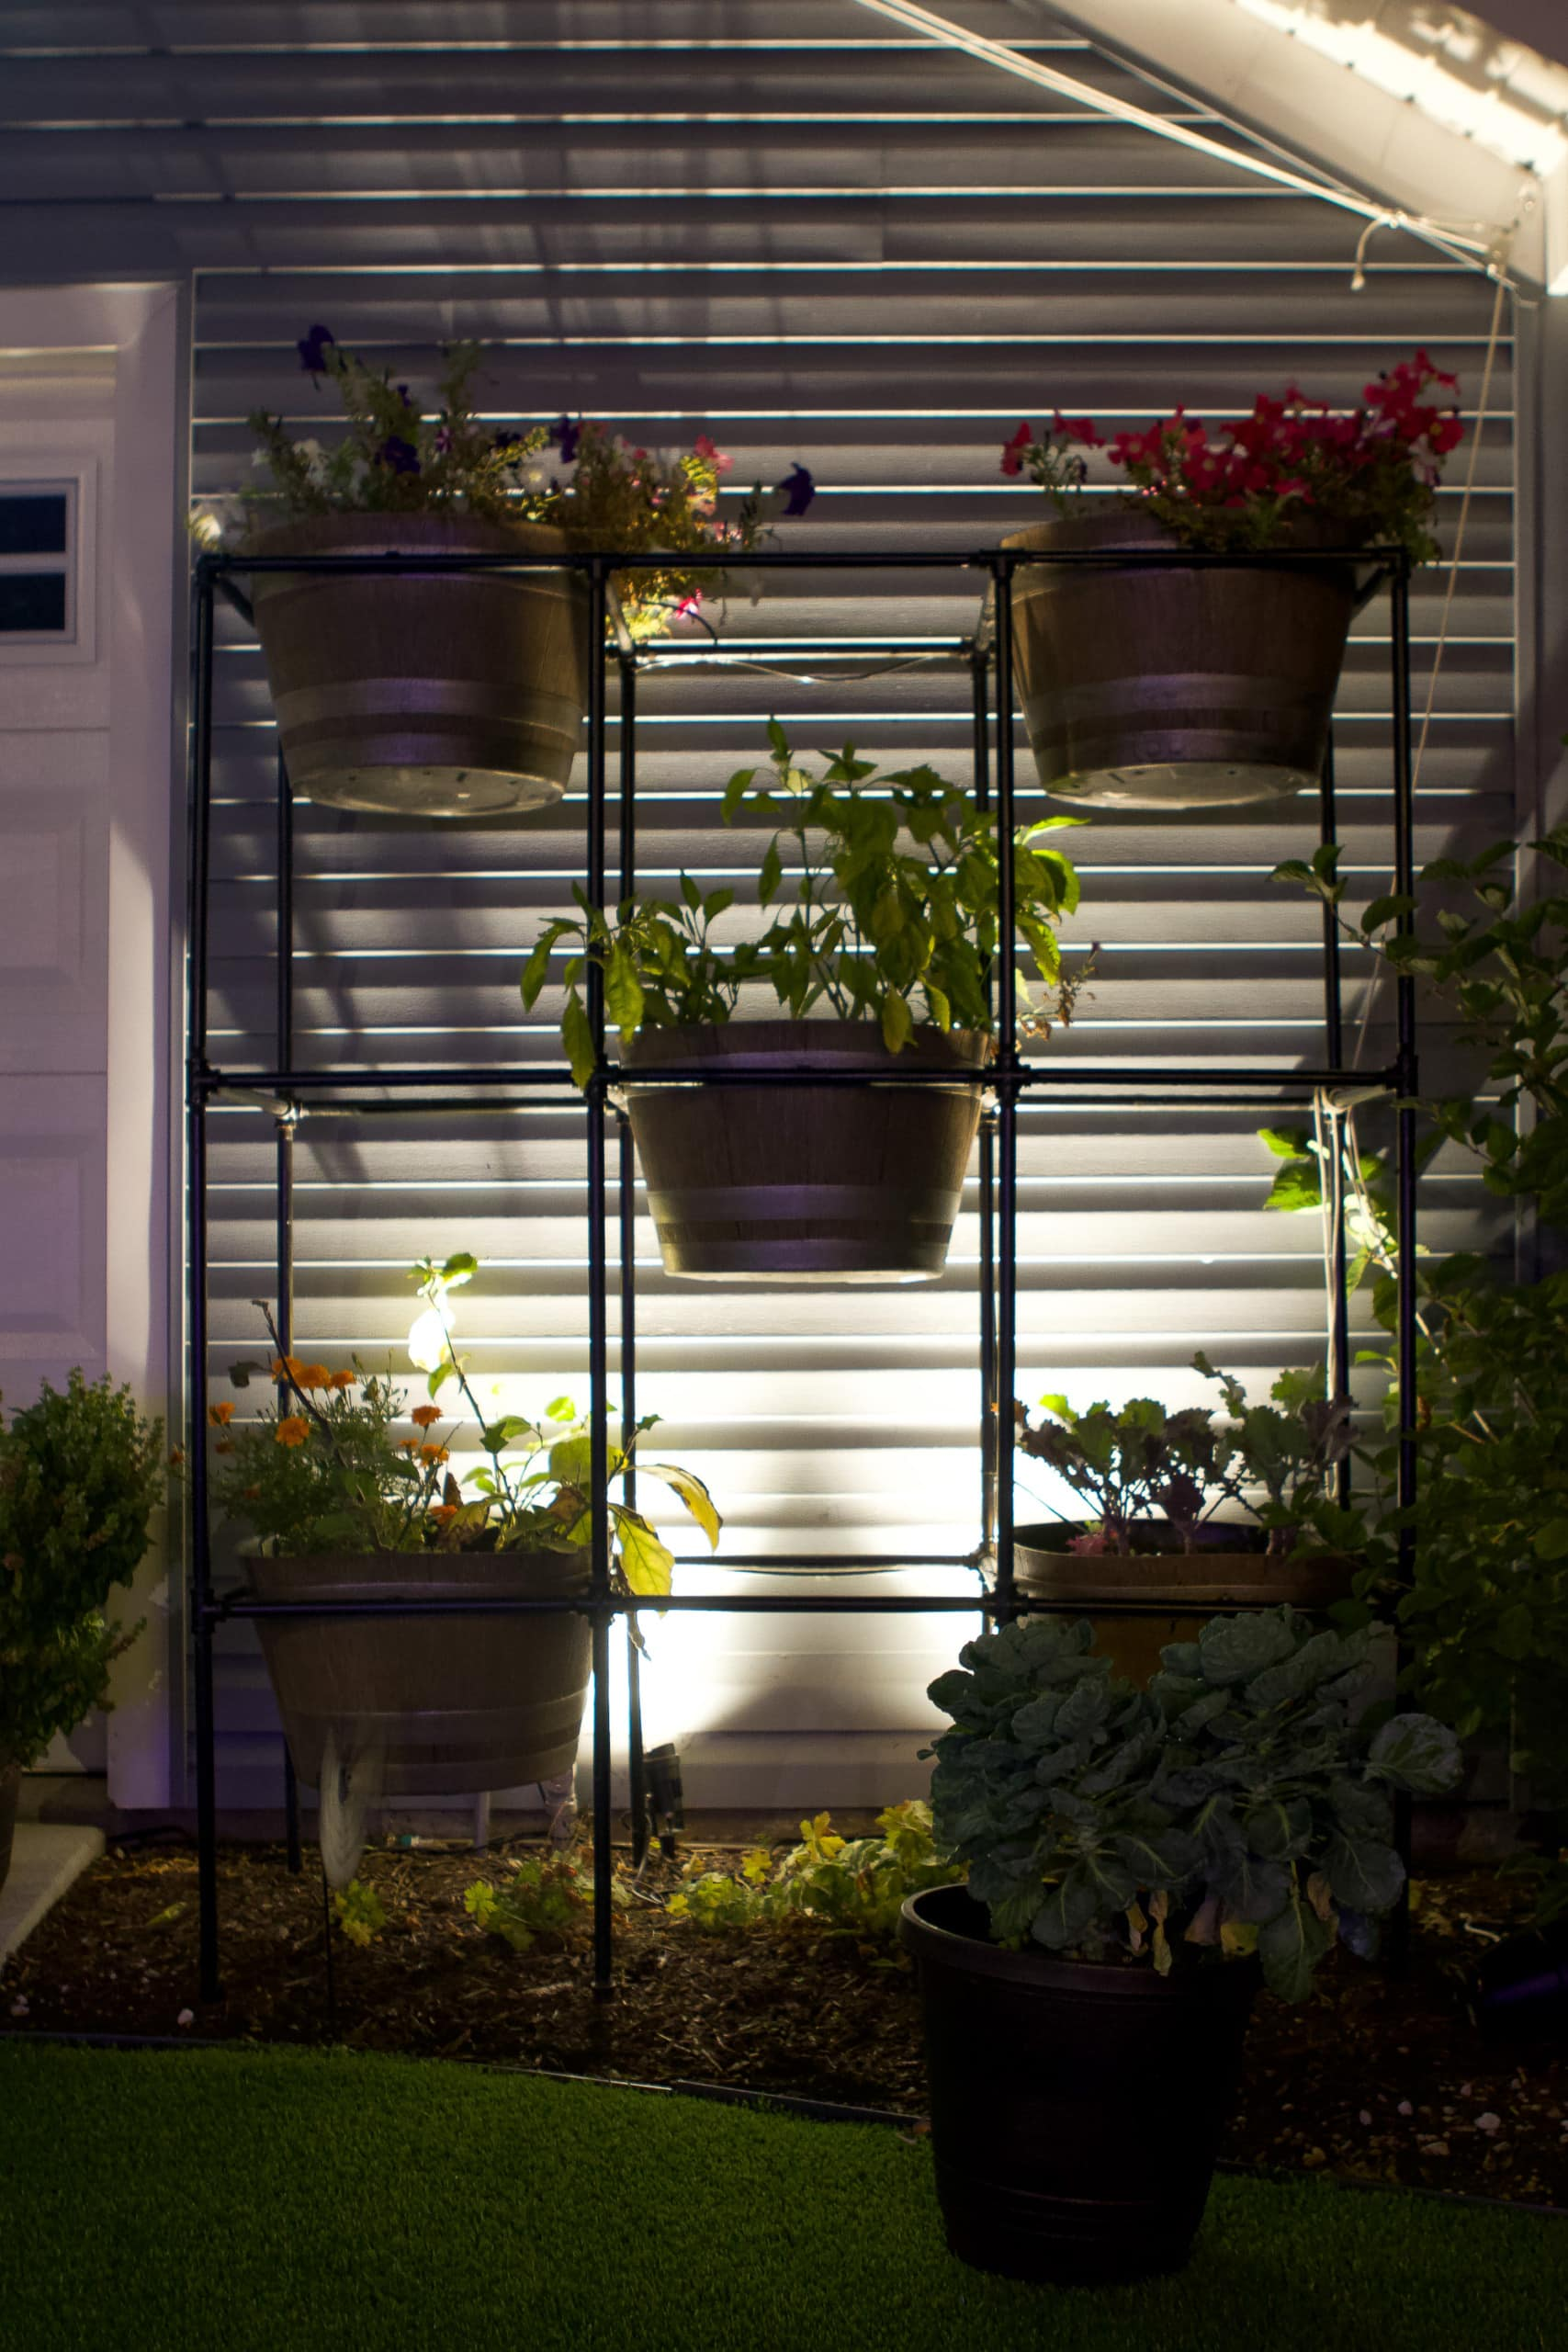 Adding lighting to your outdoor room